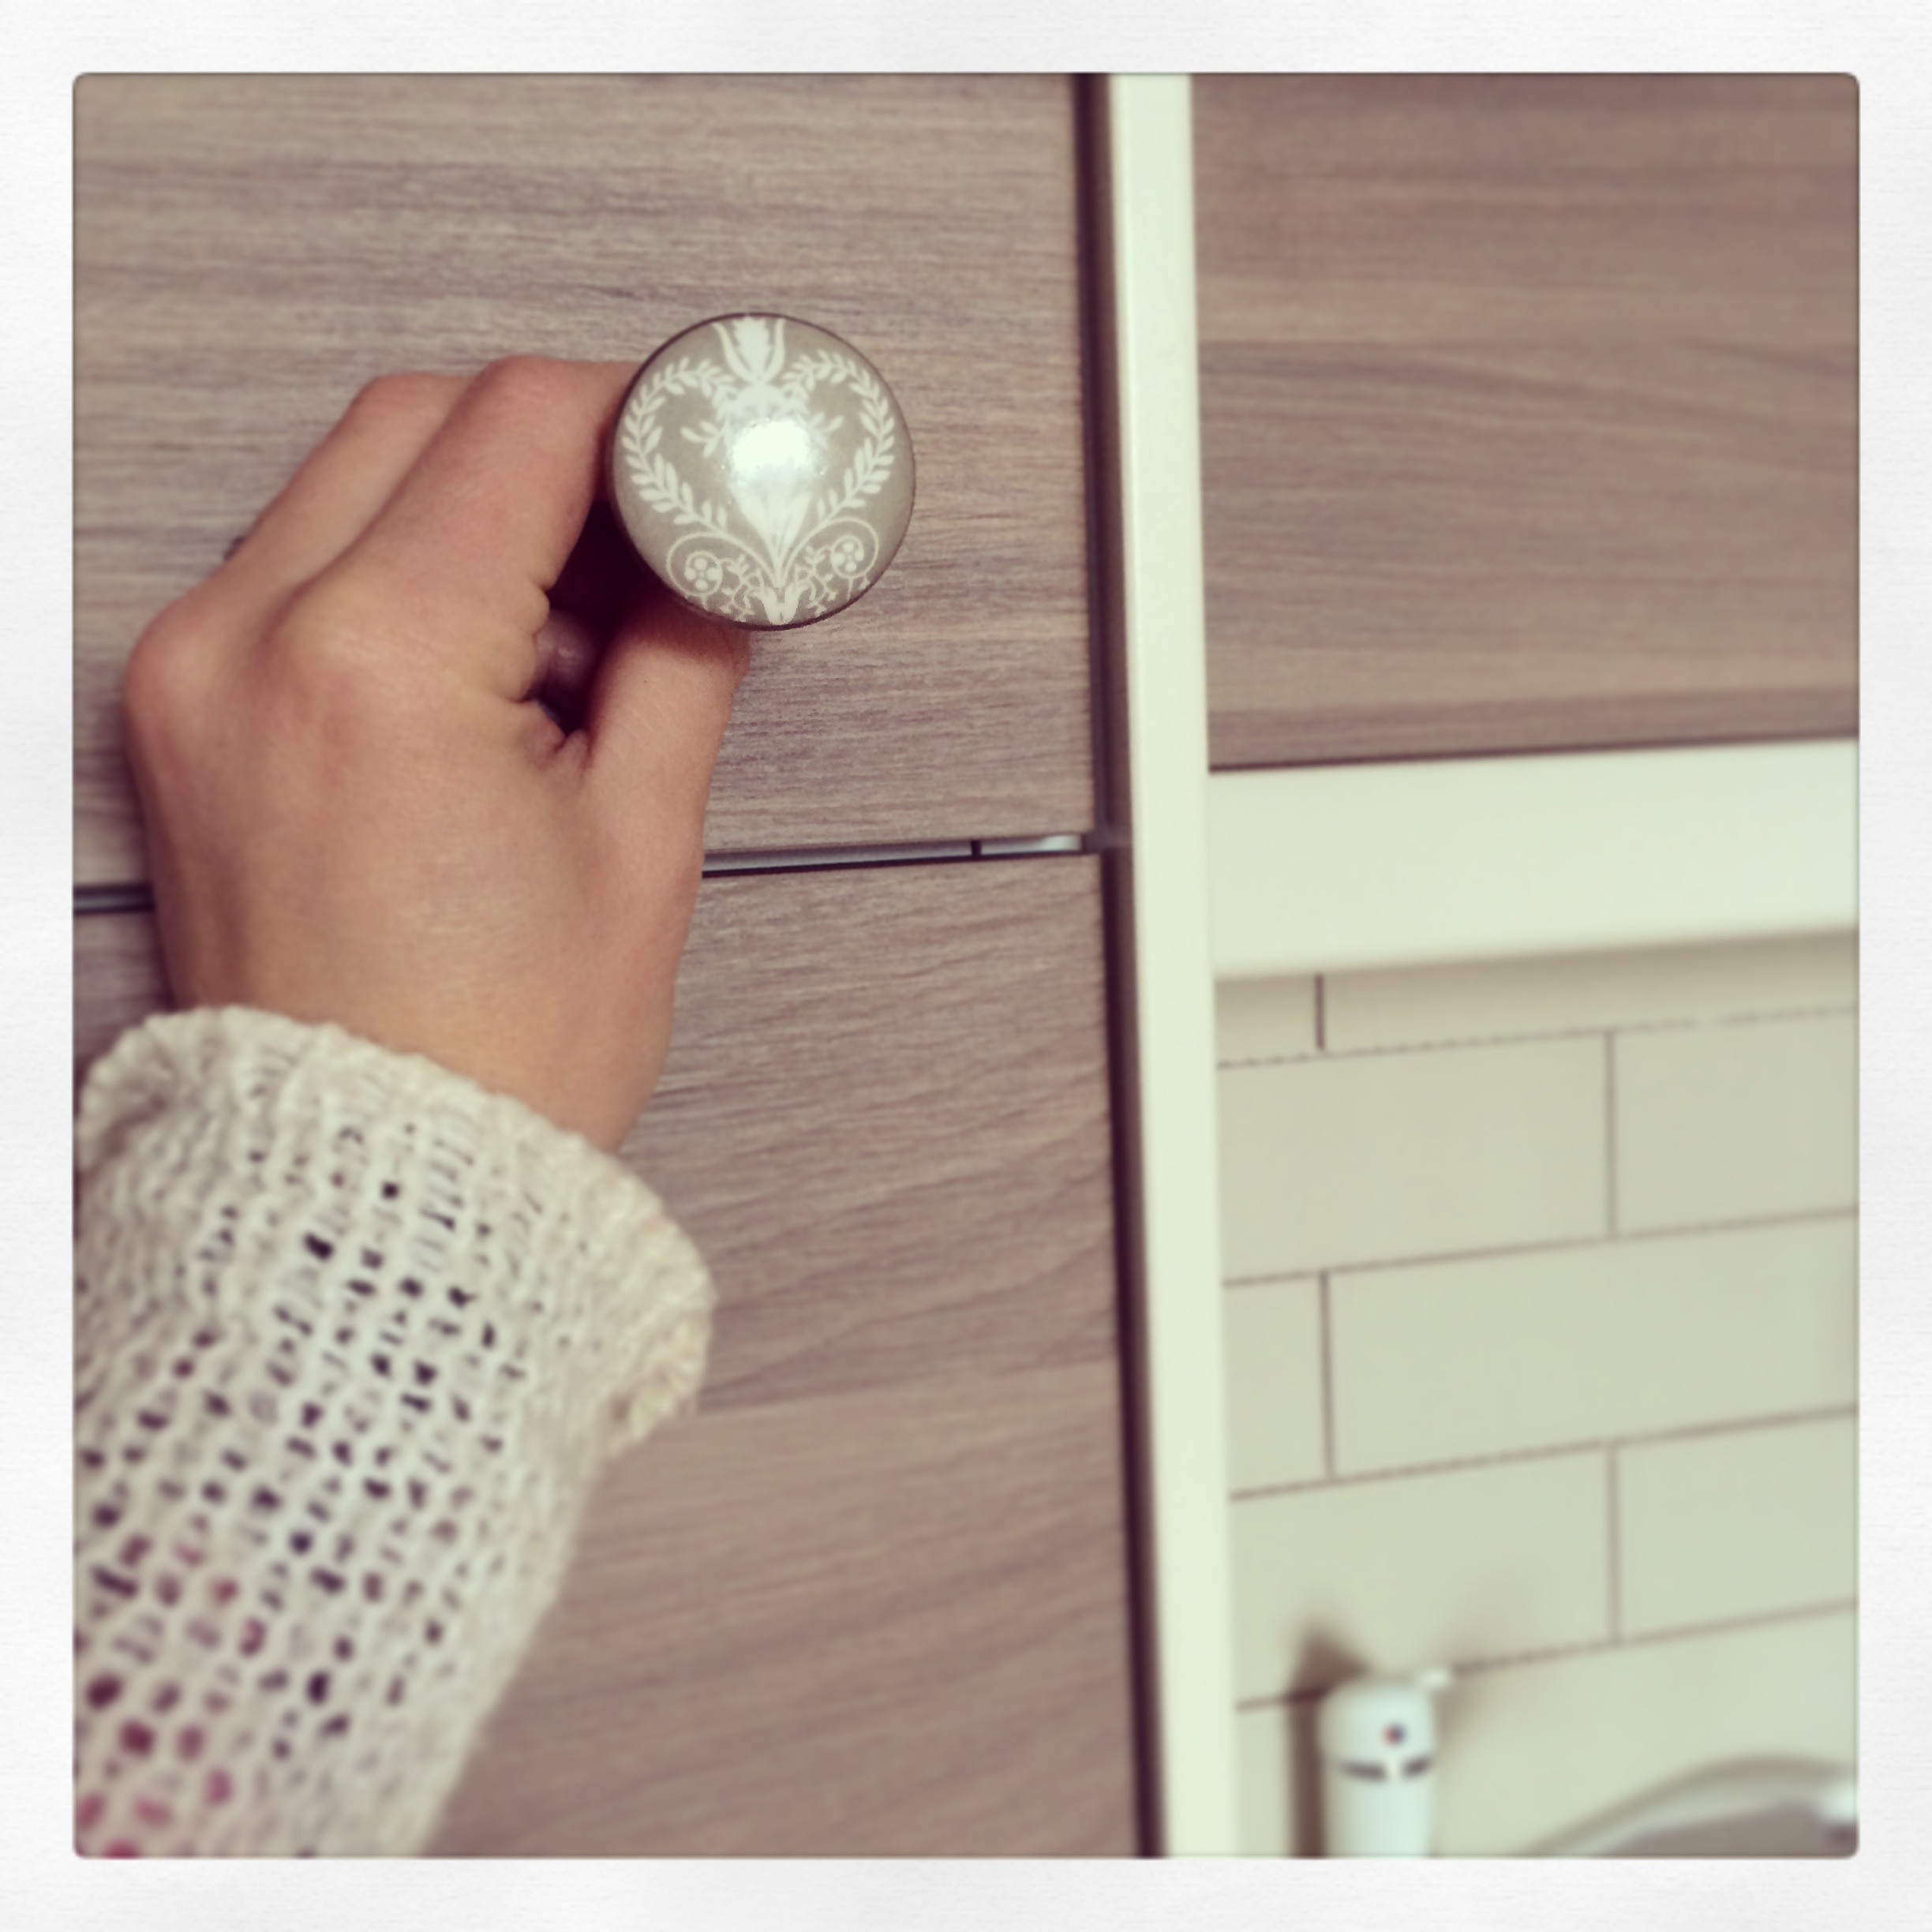 Boring knobs begone, shake up your drawers with a Rockstar vibe ...